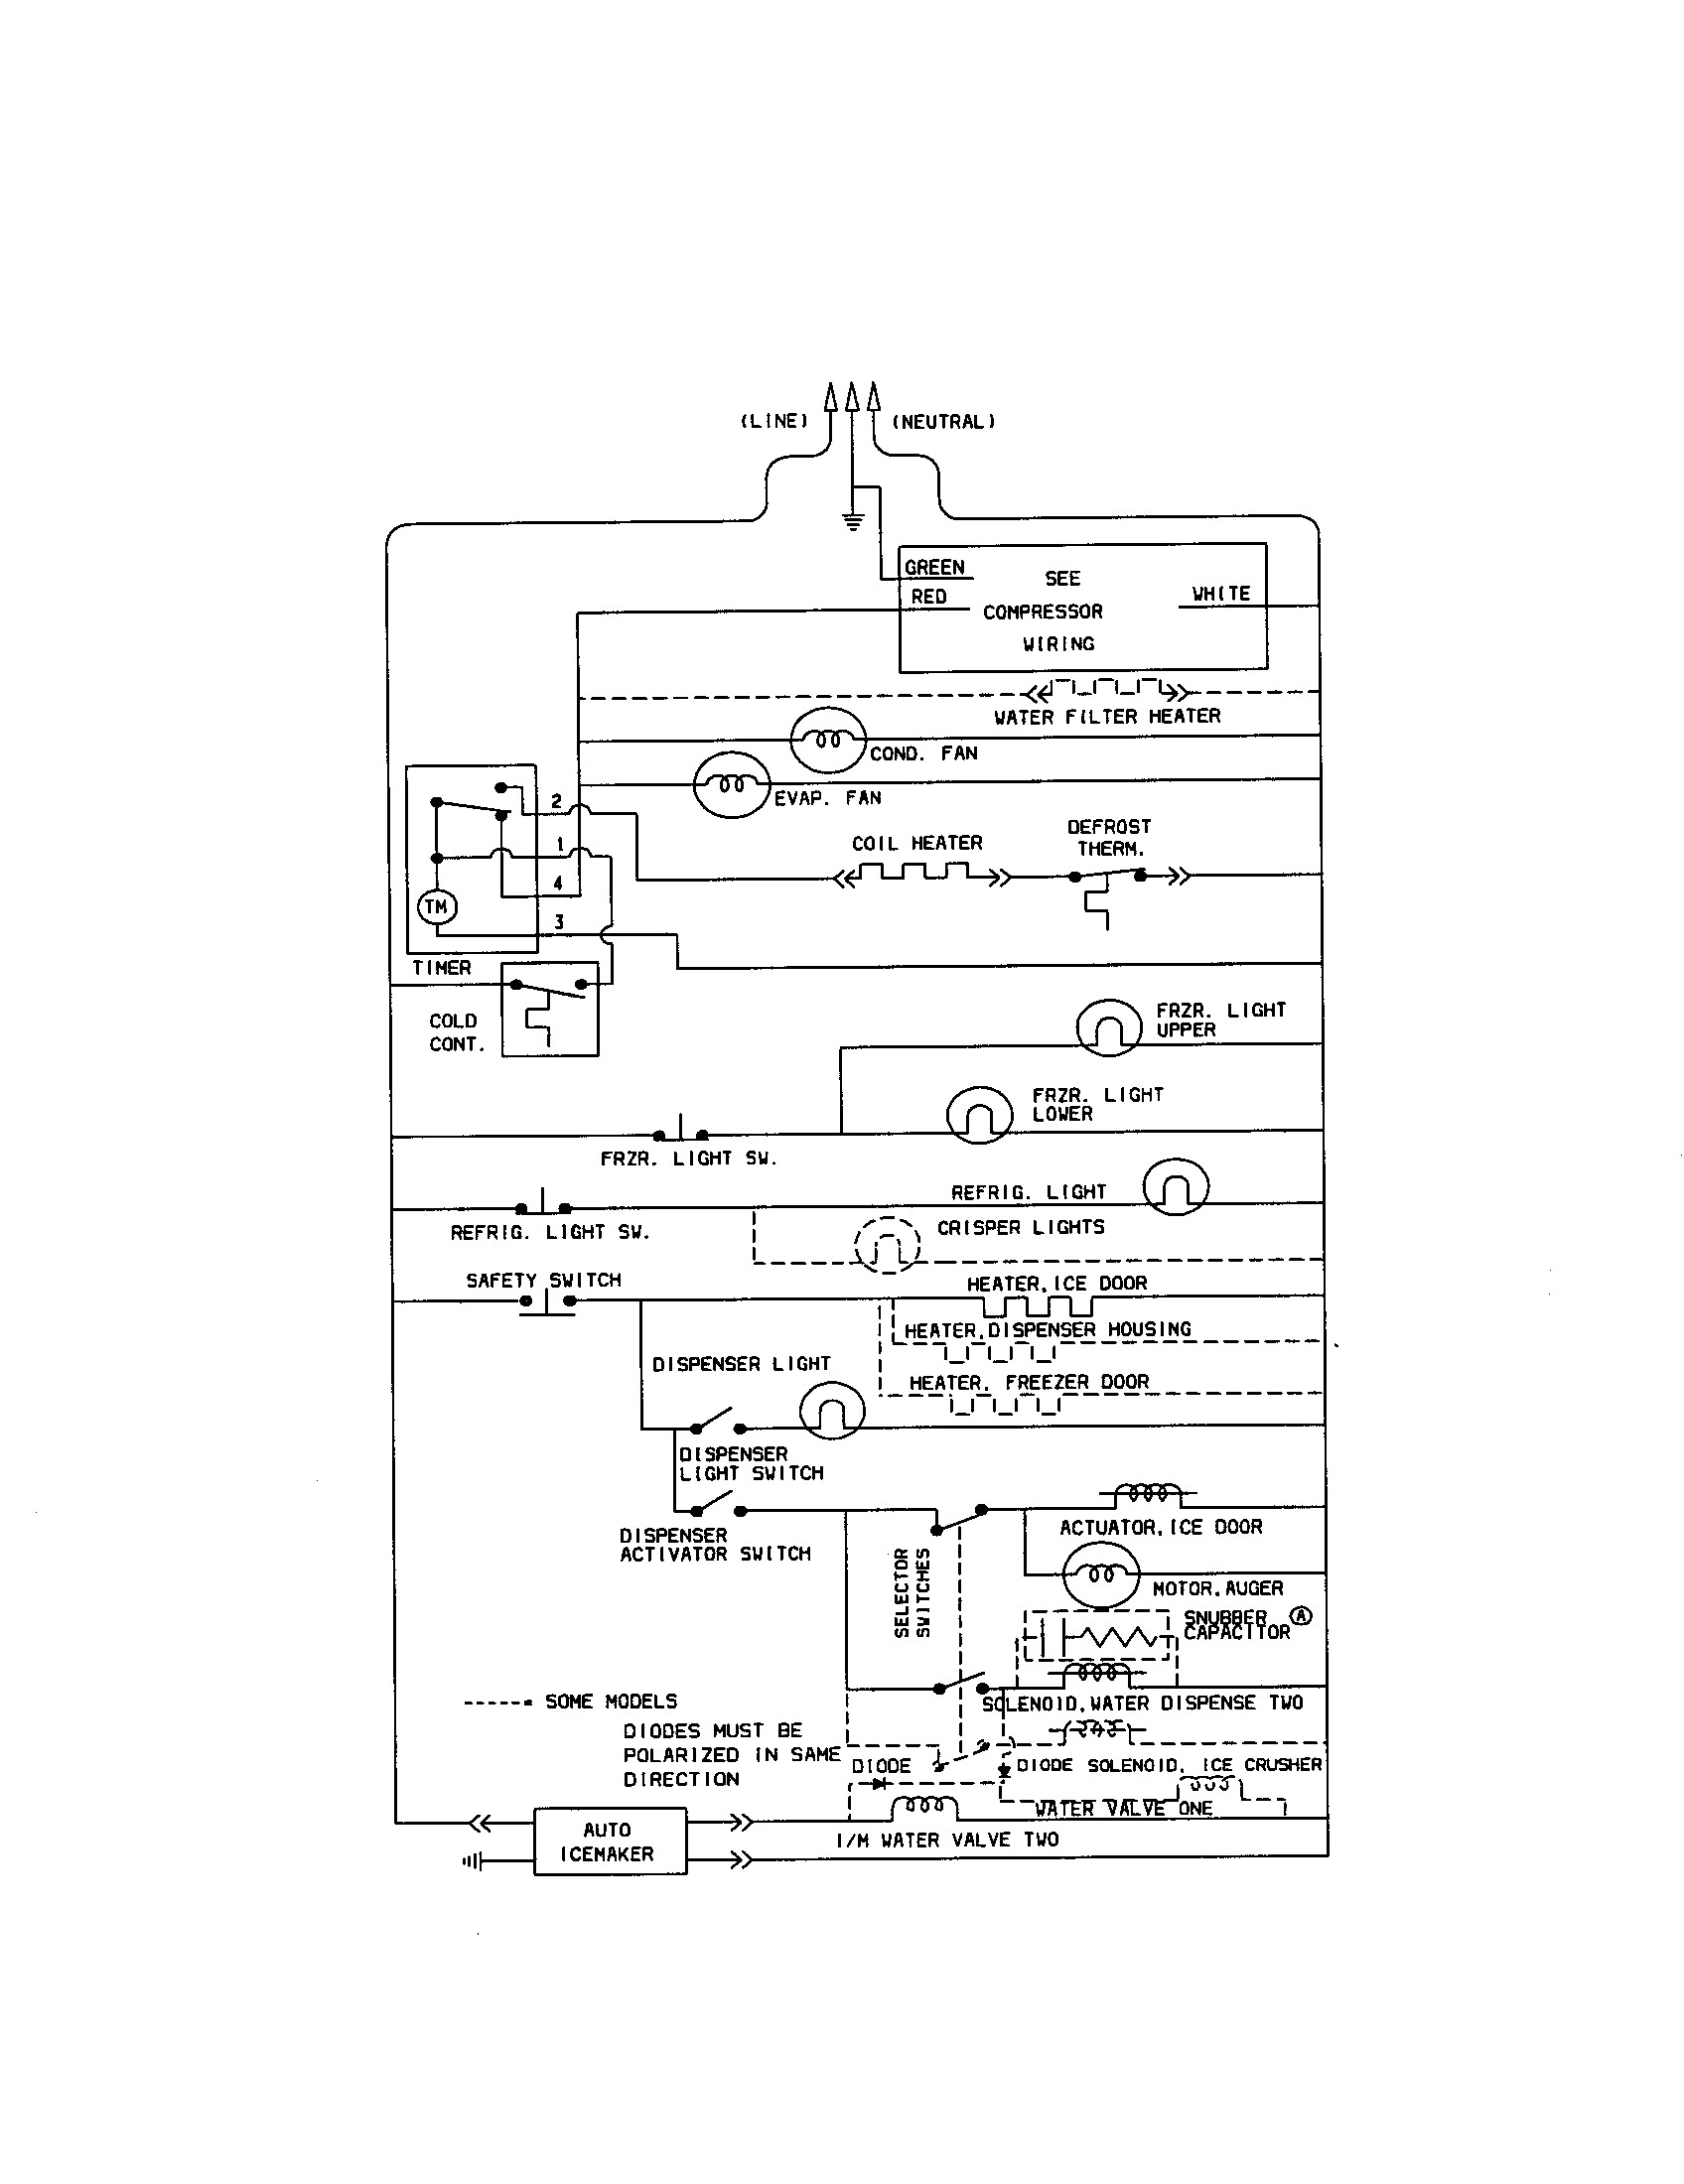 [EQHS_1162]  Wire Schematic For Kenmore Upright Freezer - Wiring Diagram List | Sears Freezer Wiring Diagram |  | Wiring Diagram List - azubi-recruiting.de